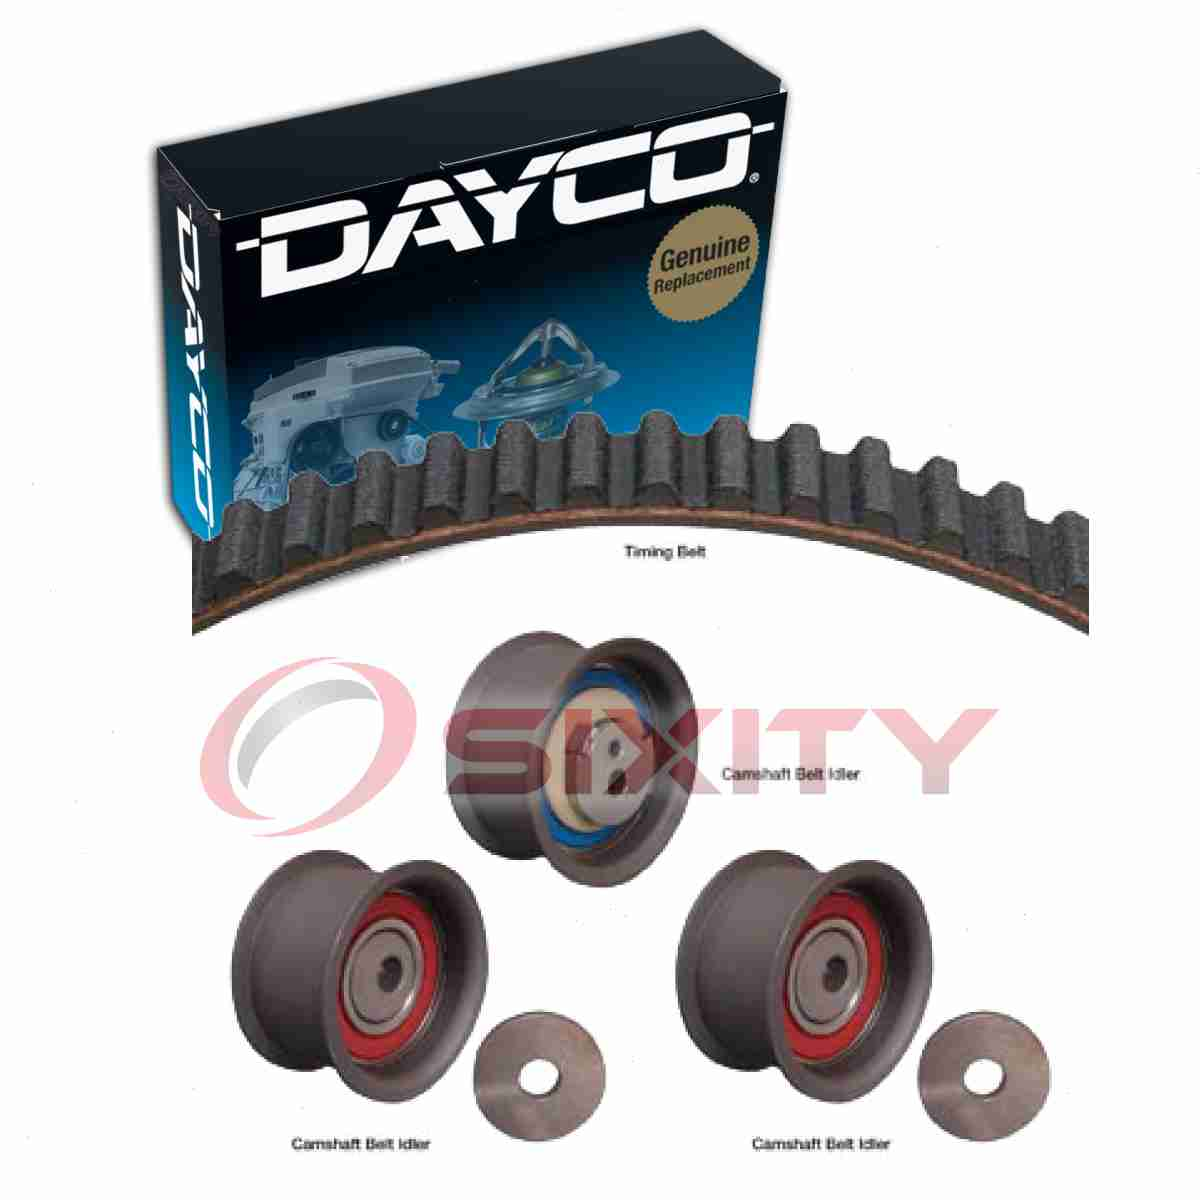 Which timing belt is better